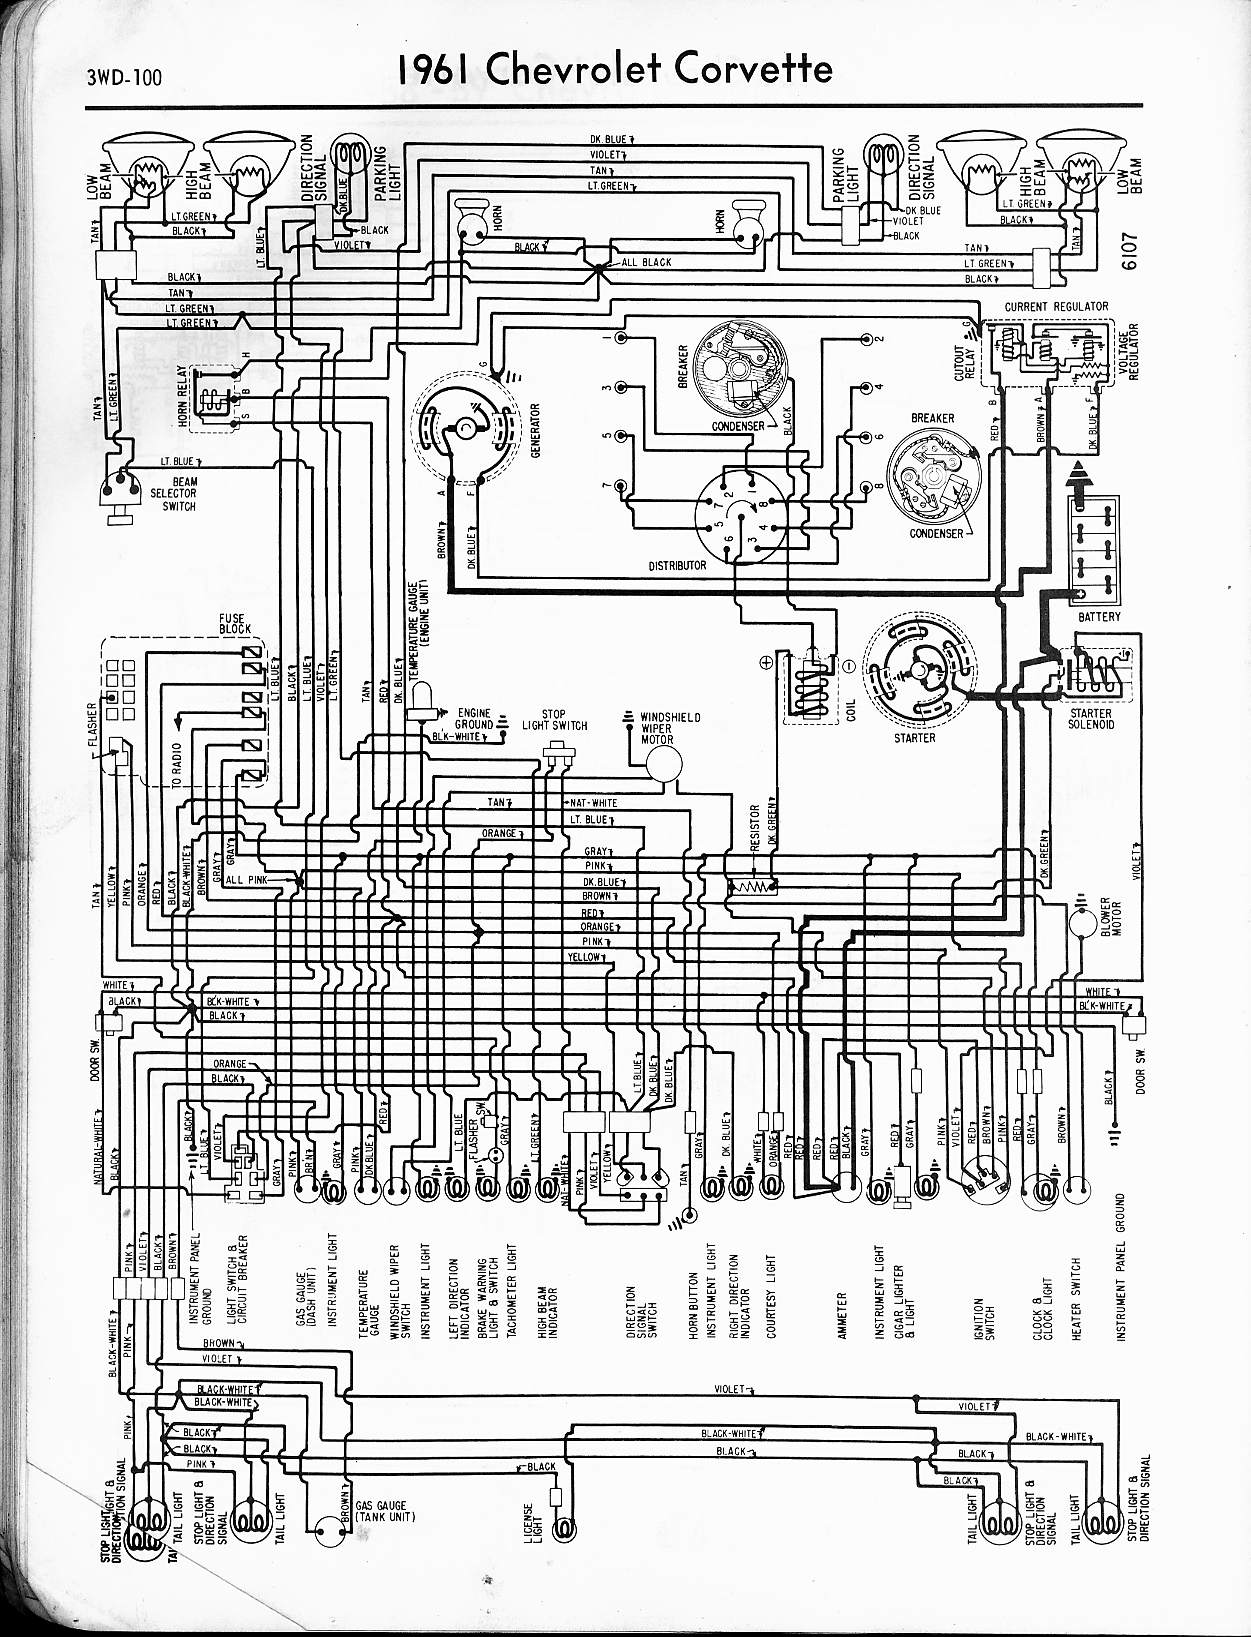 MWireChev61_3WD 100 corvette wiring diagram corvette parts diagram \u2022 wiring diagrams 1960 chevy impala wiring diagram at crackthecode.co